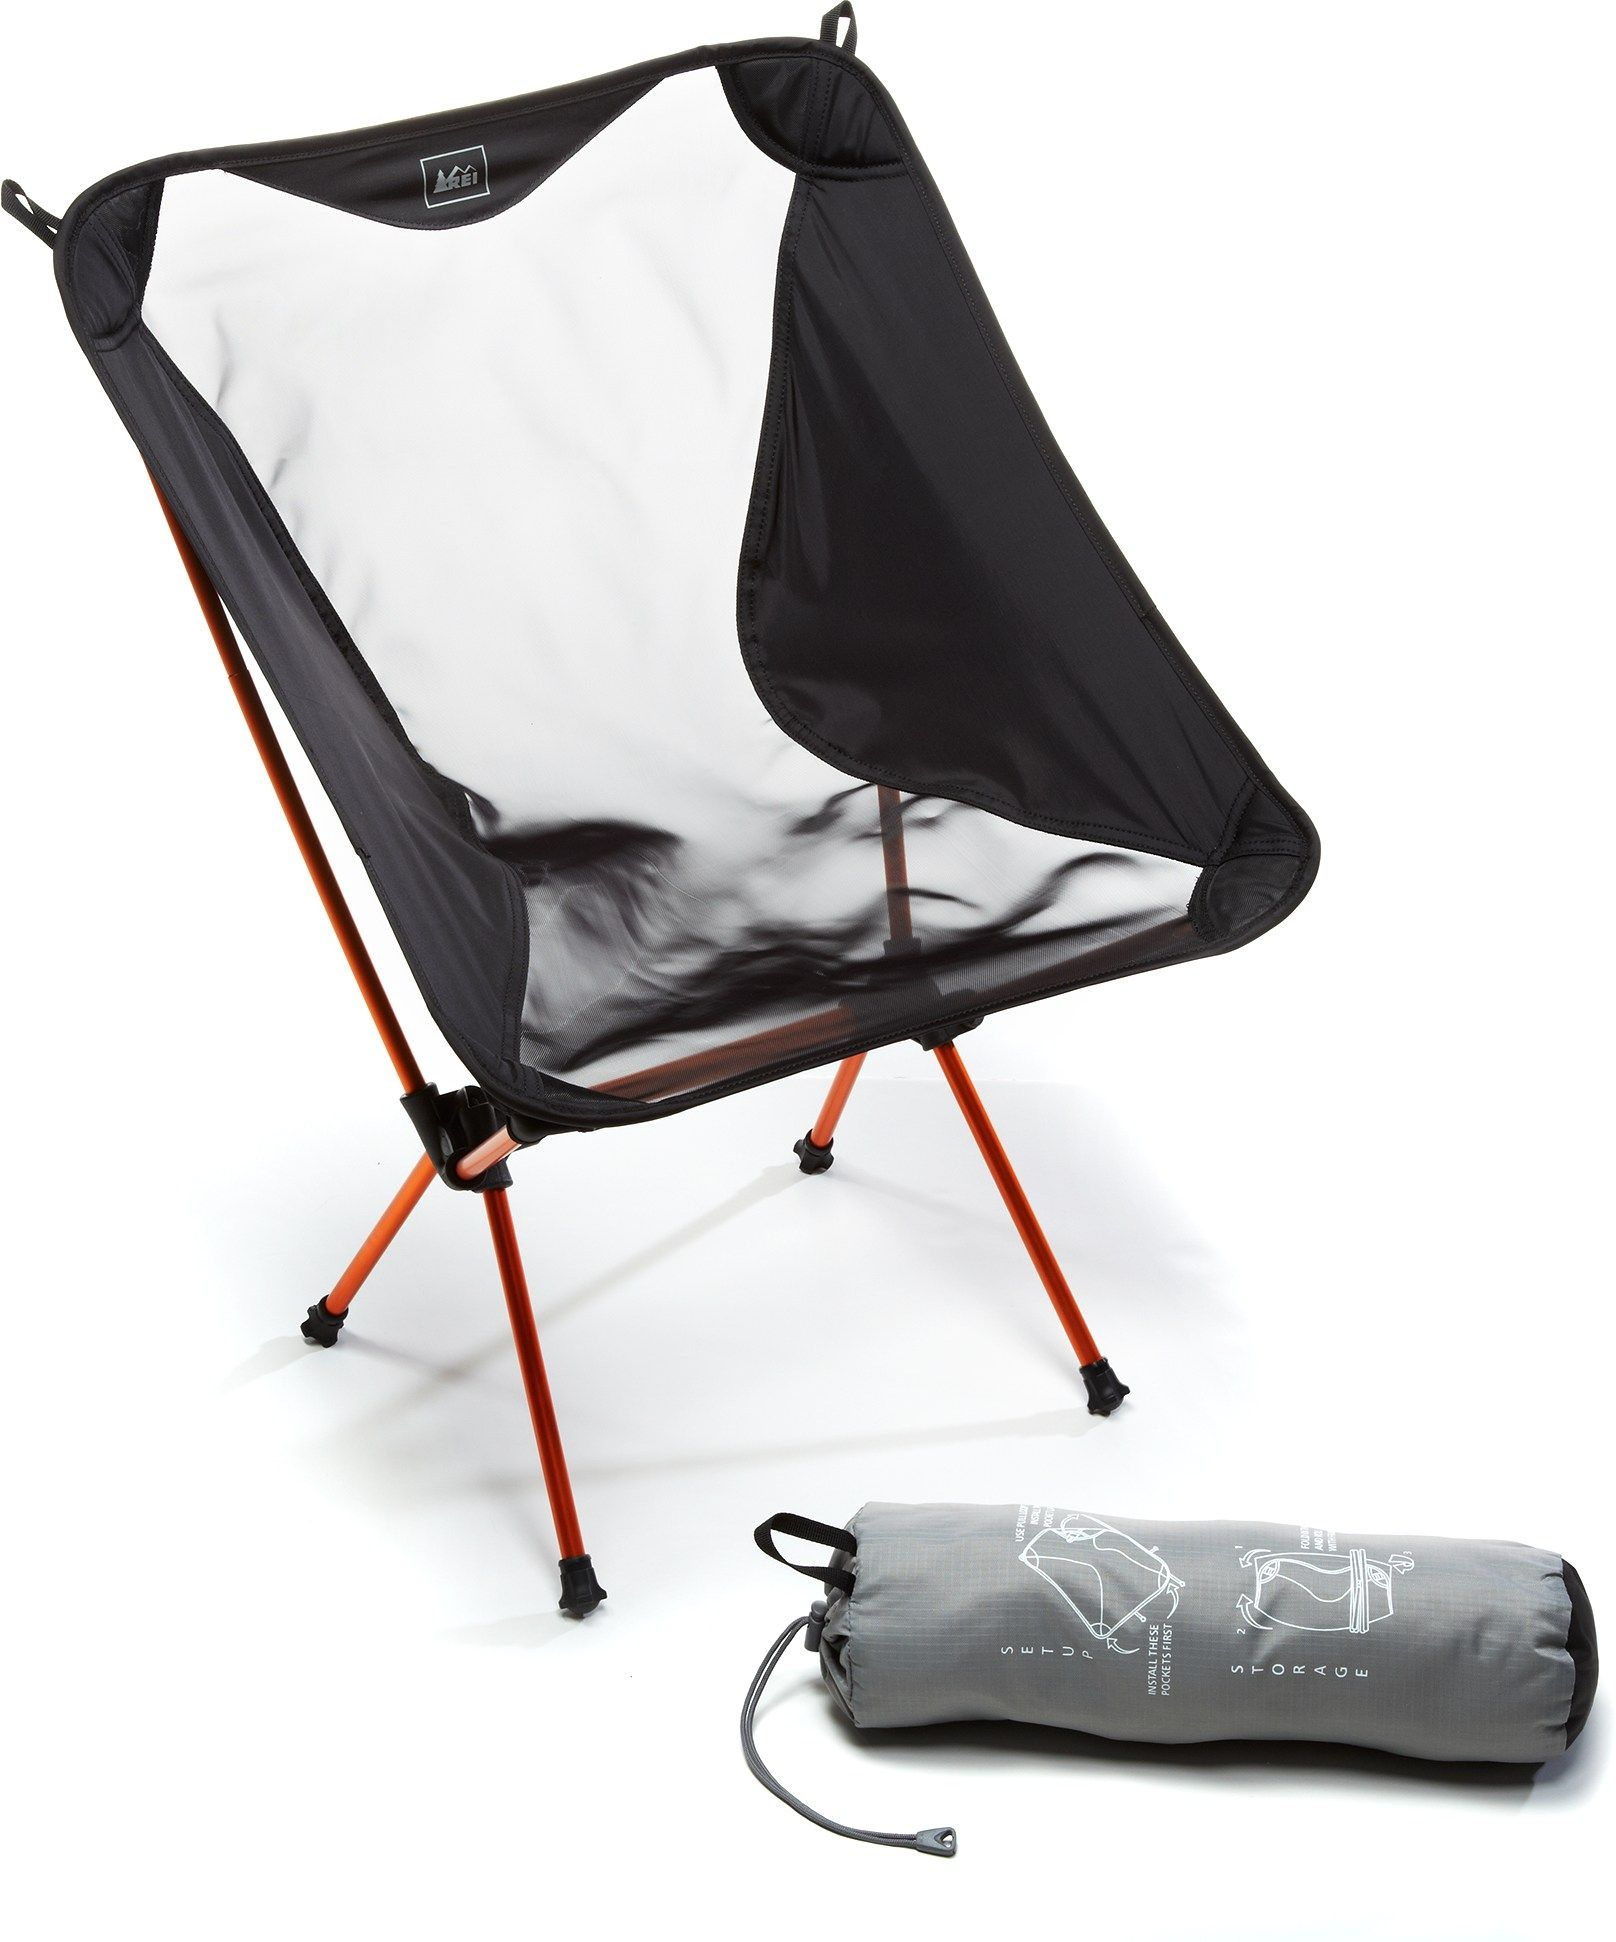 Hiking Chairs Co Op Flexlite Chair Rei Co Op Car Camping Camping